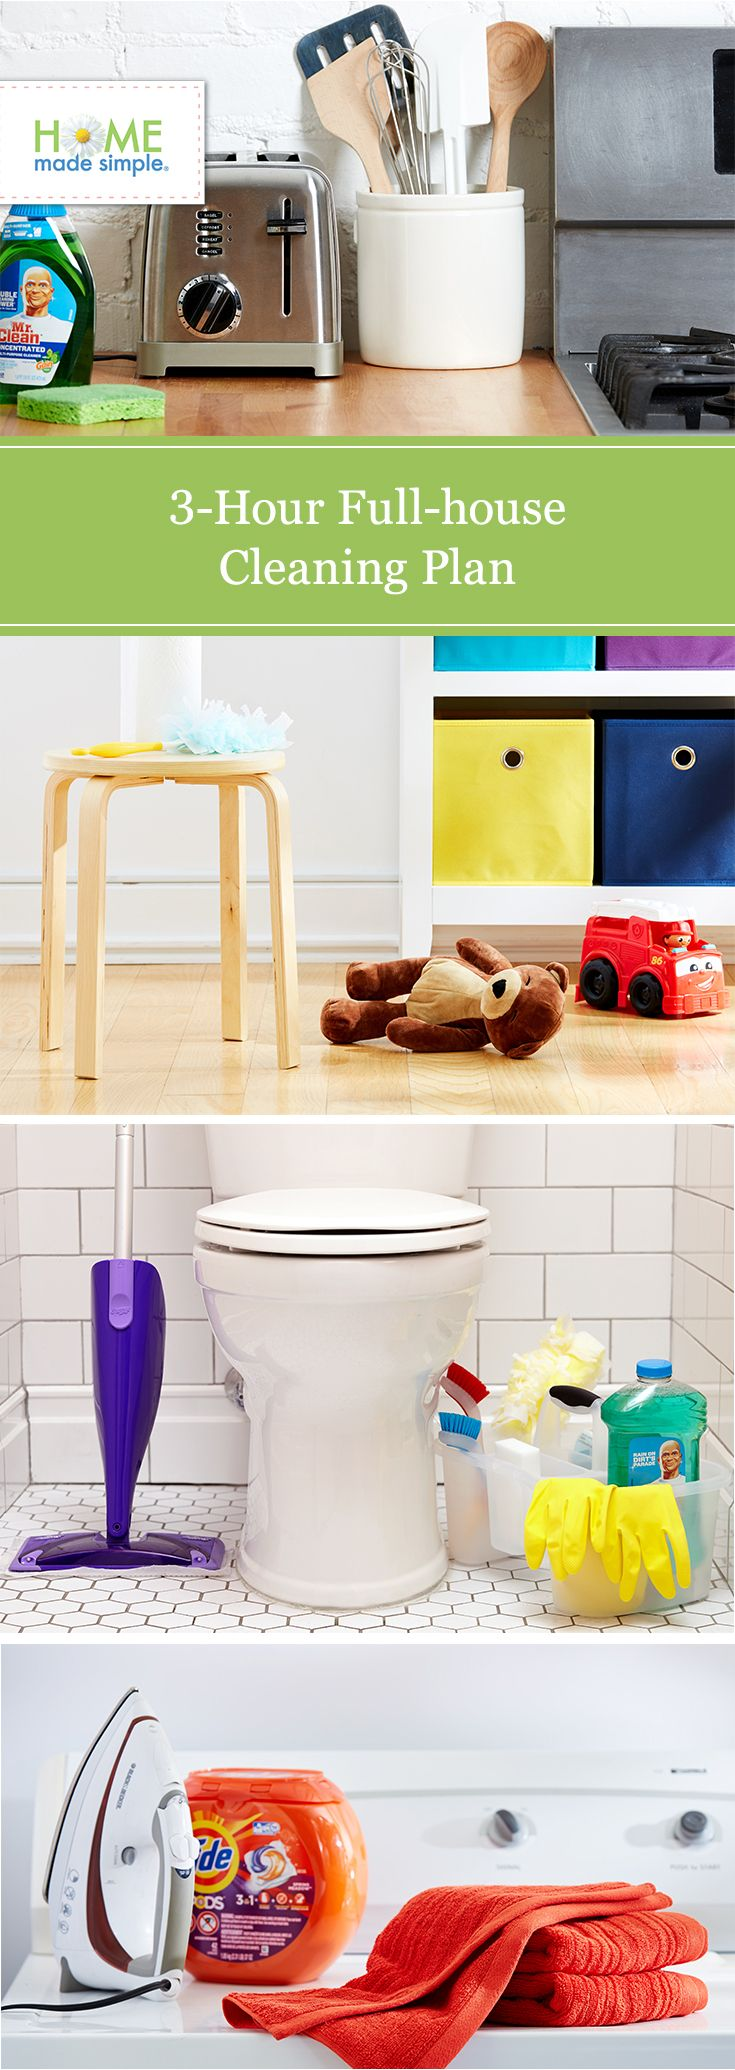 Clean the whole house in 3 hours or less? It really is possible with our time-saving plan. Get our minute-by-minute guides and tips for the kitchen, bathrooms, kids' bedrooms, laundry room and patio.